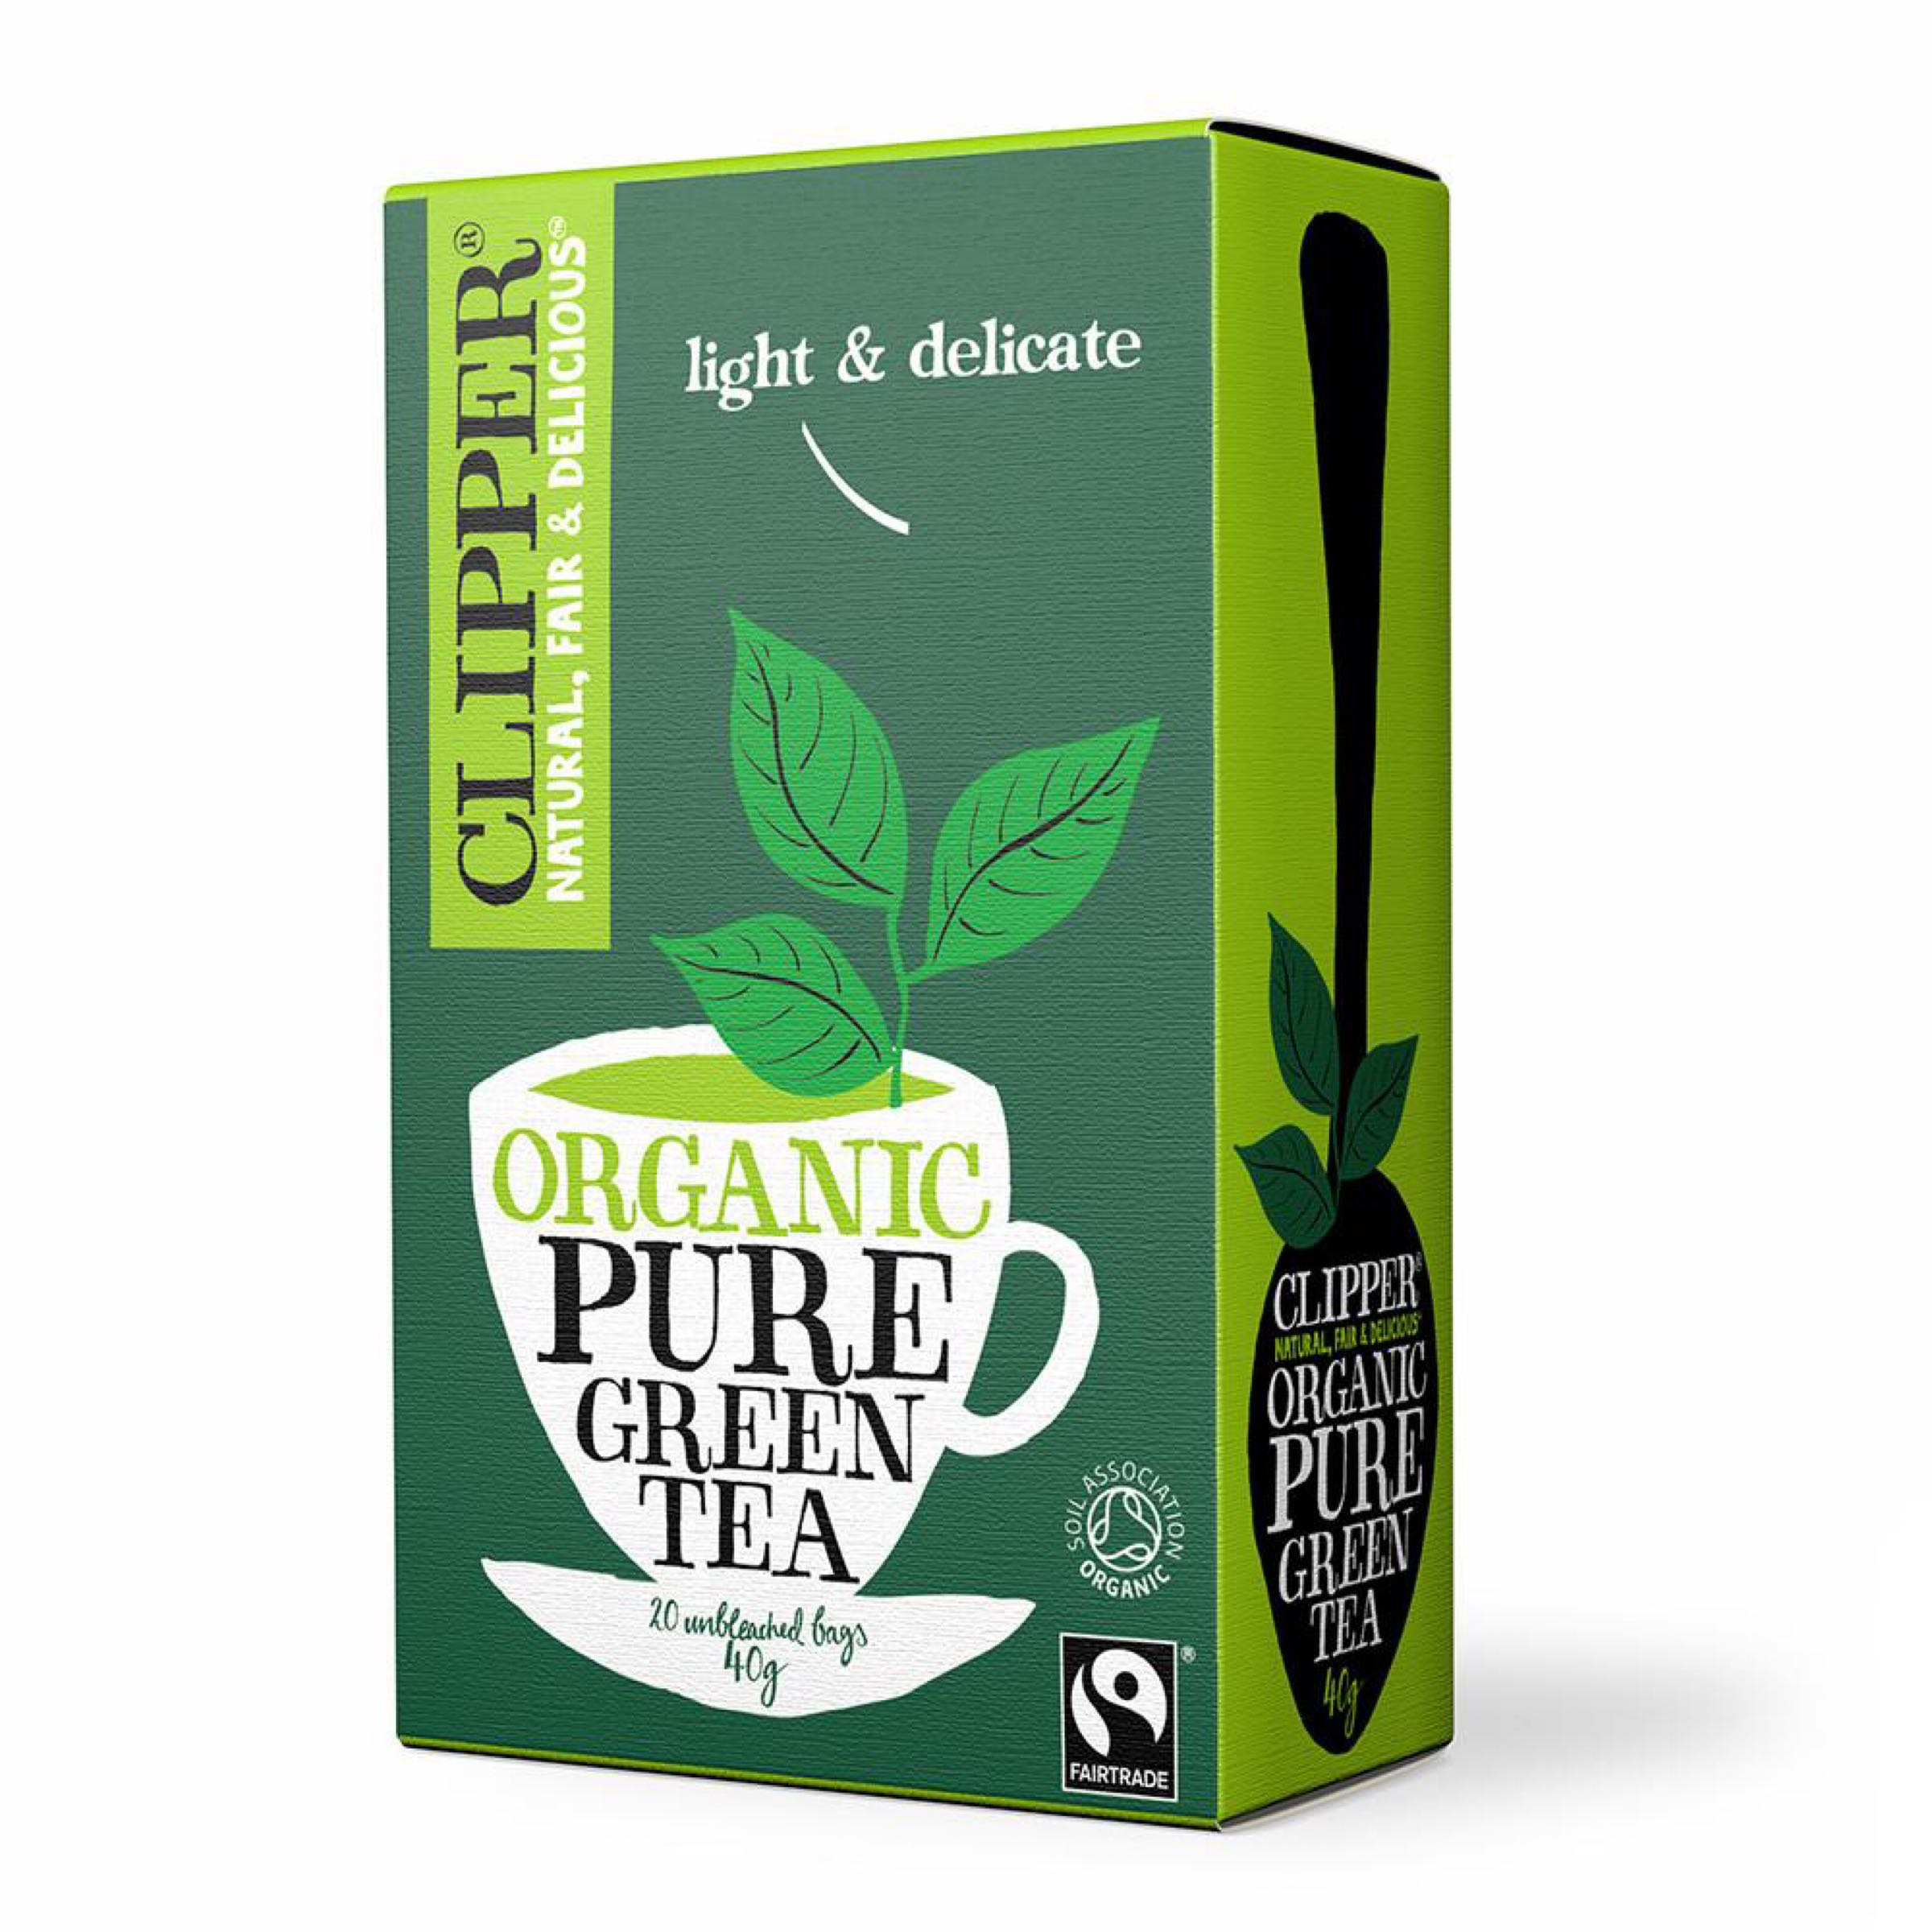 Clipper Organic Pure Green Tea (20 bags)